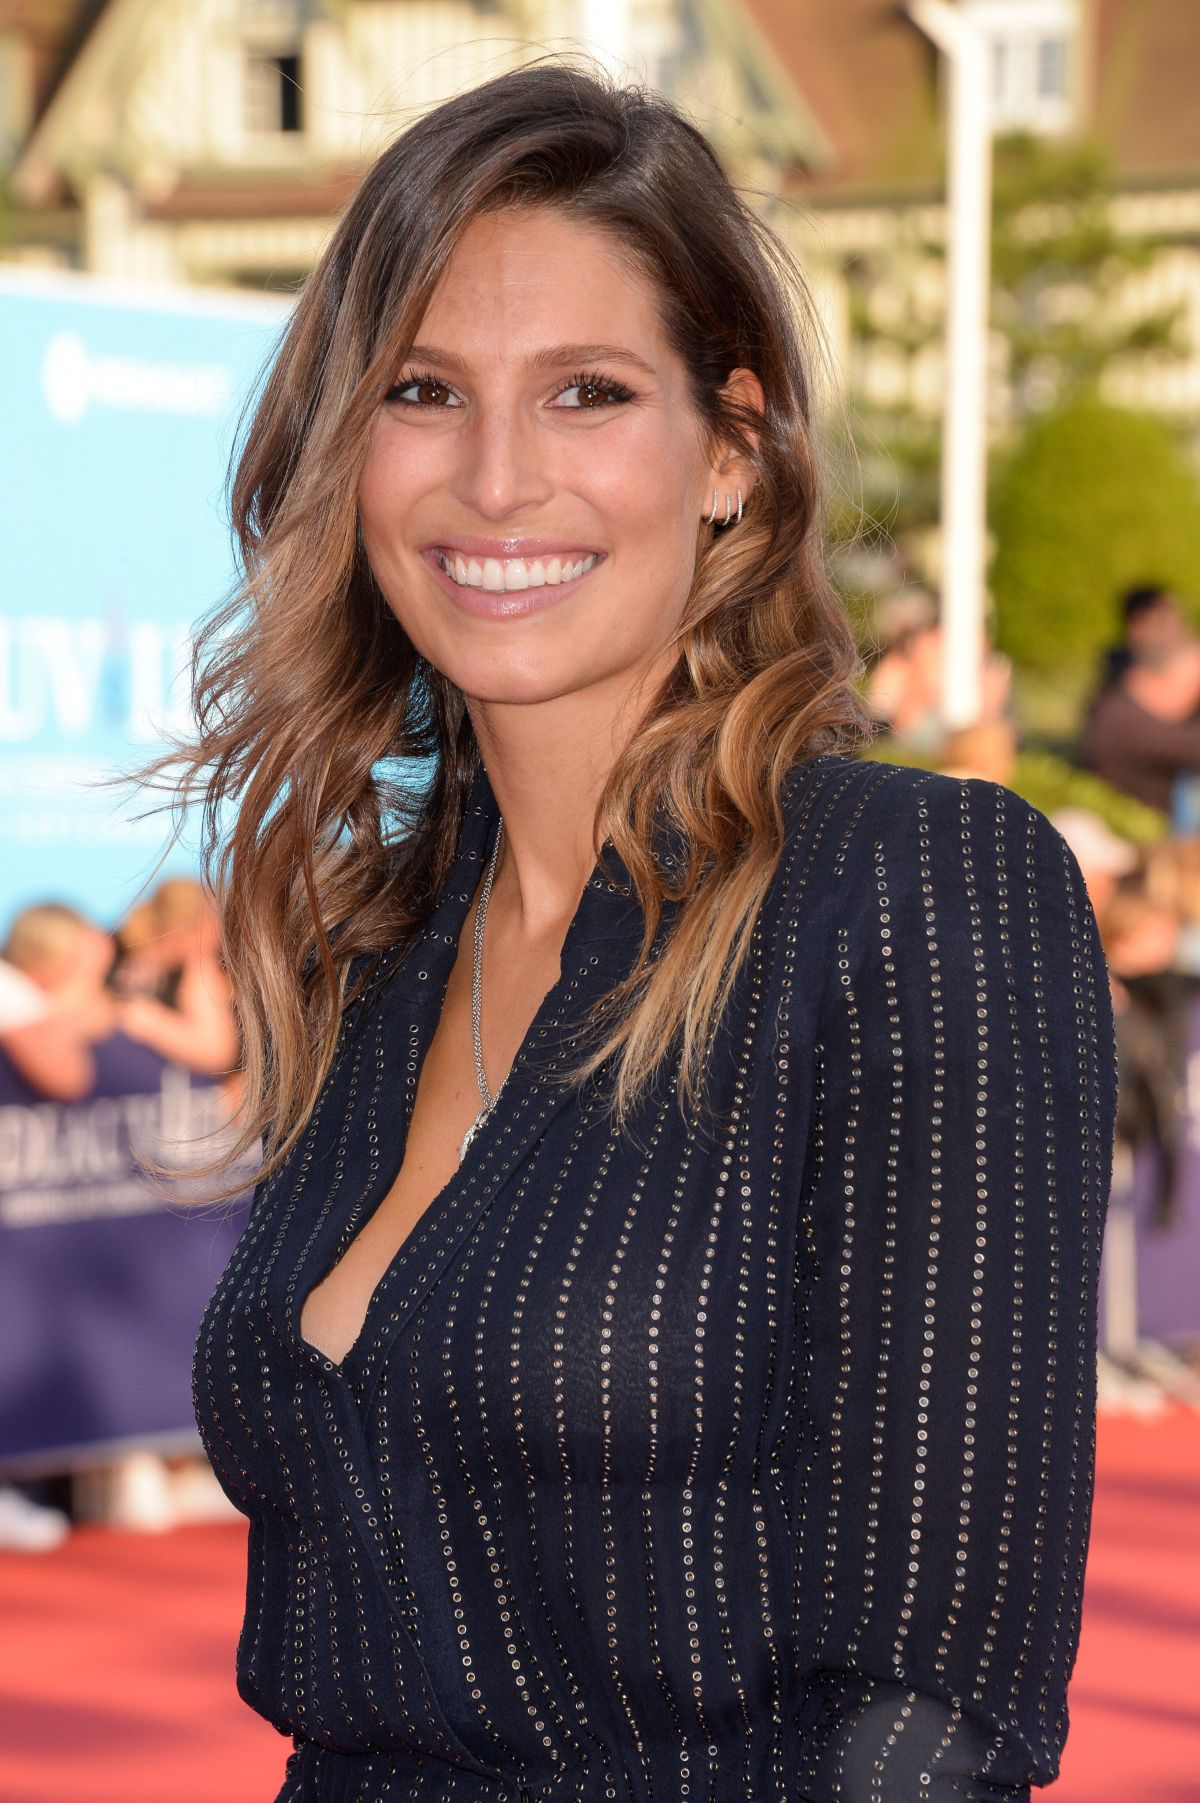 Photos Laury Thilleman nude photos 2019